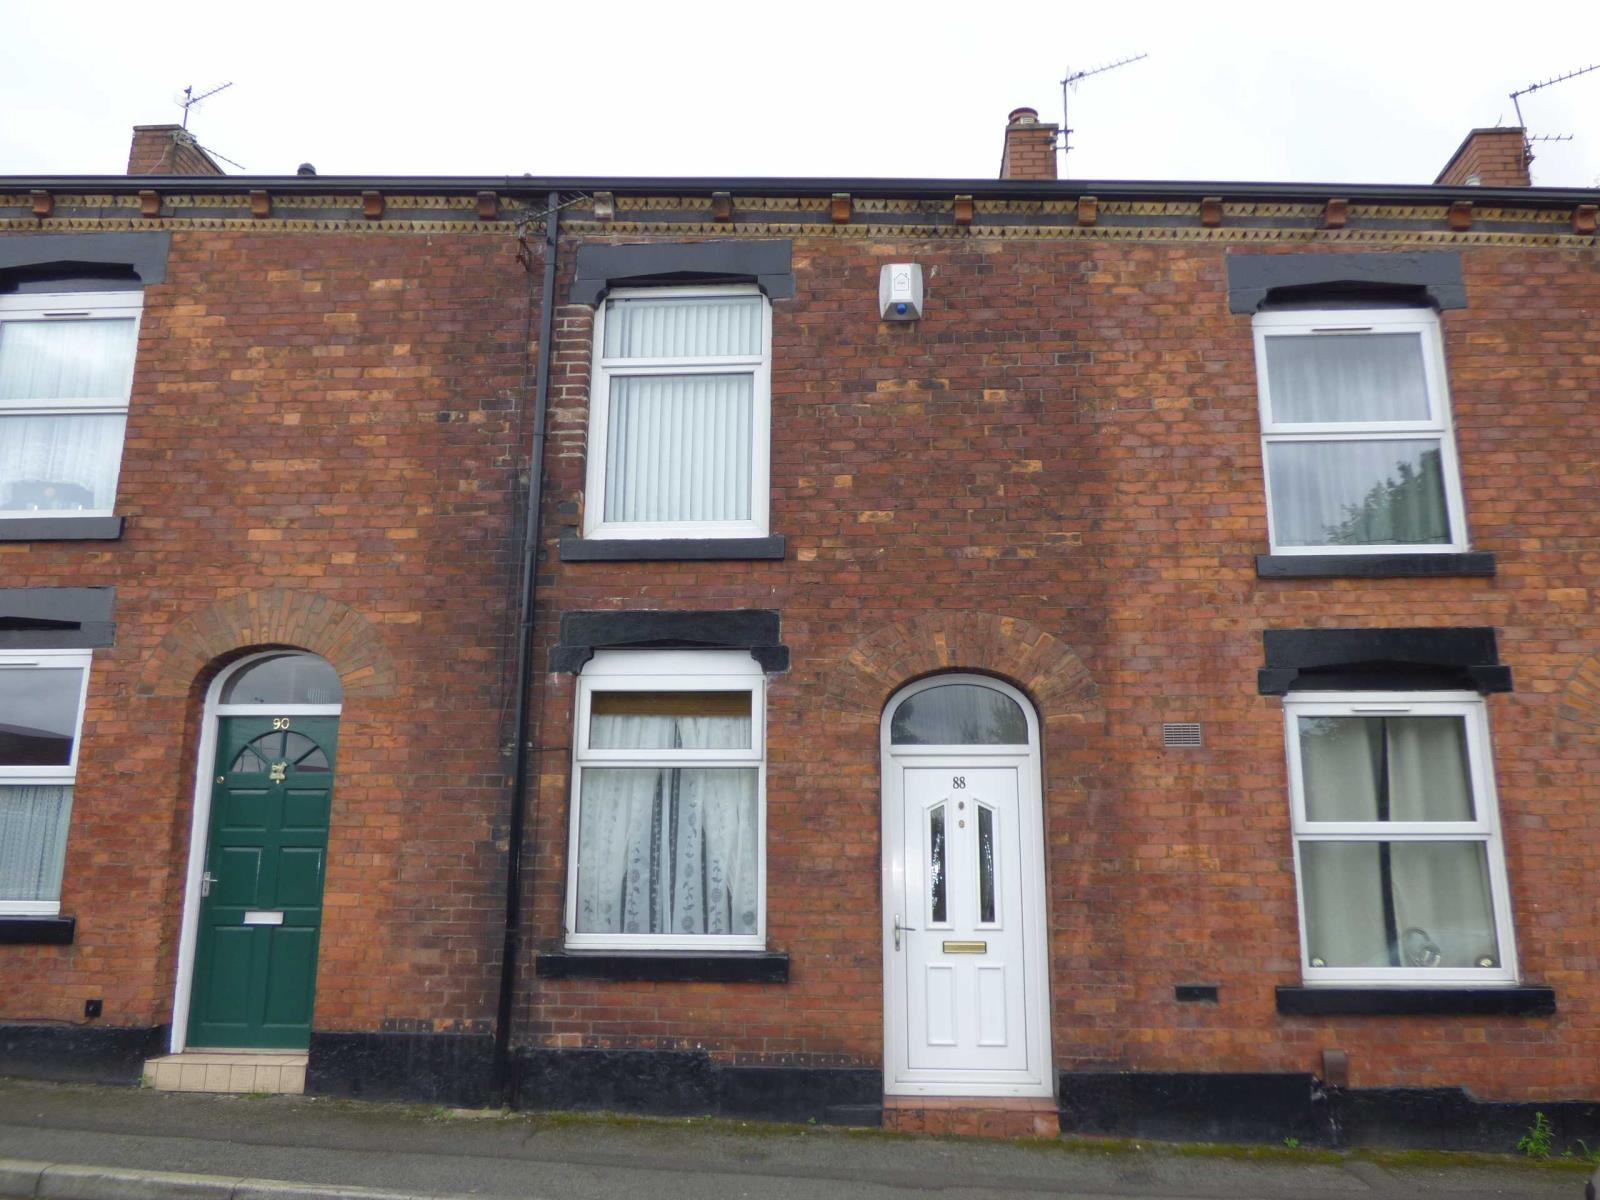 2 Bedrooms Terraced House for sale in Shadwell Street East, Heywood, Lancashire, OL10